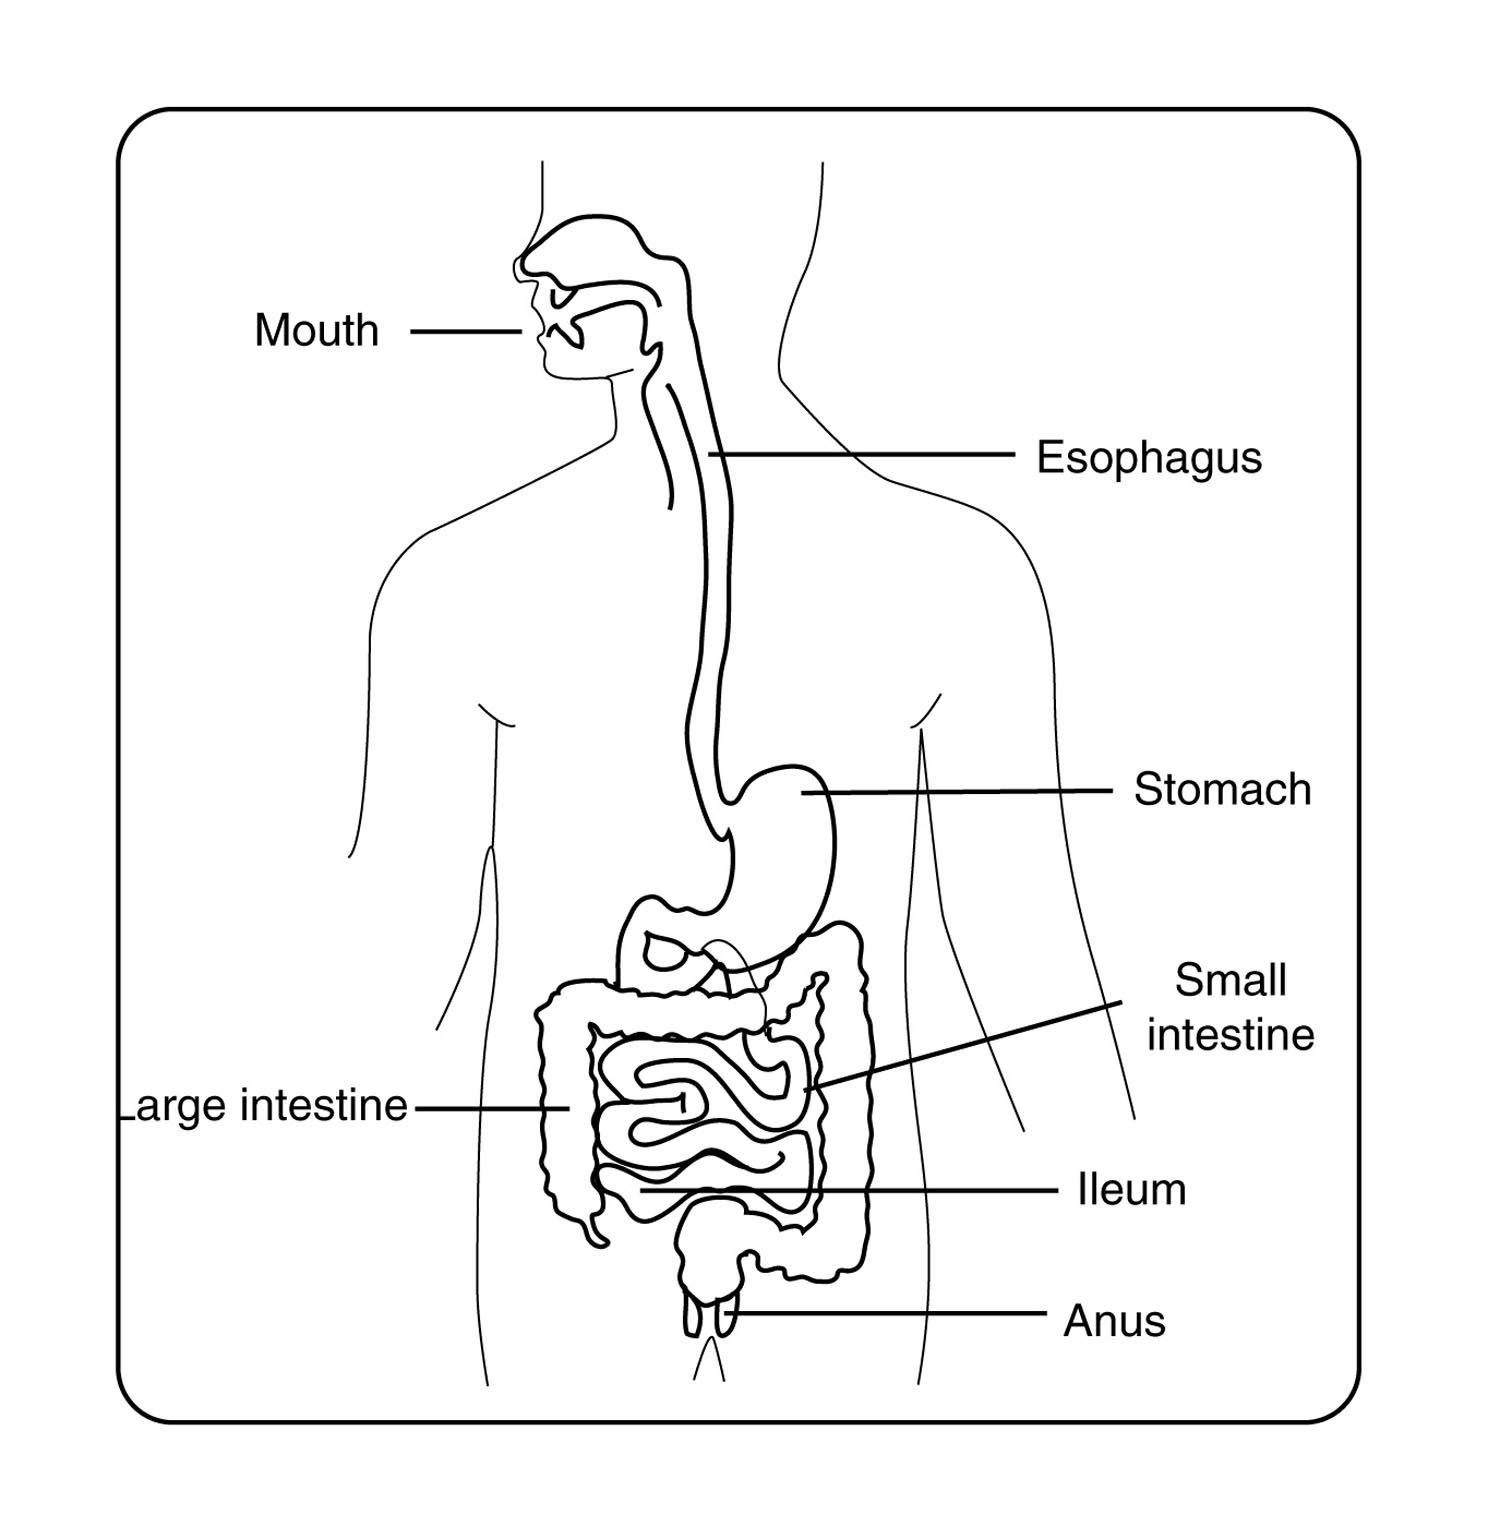 Main Organ Of The Digestive System Digestive System Part And Labled Accessory Organs In Digestion The